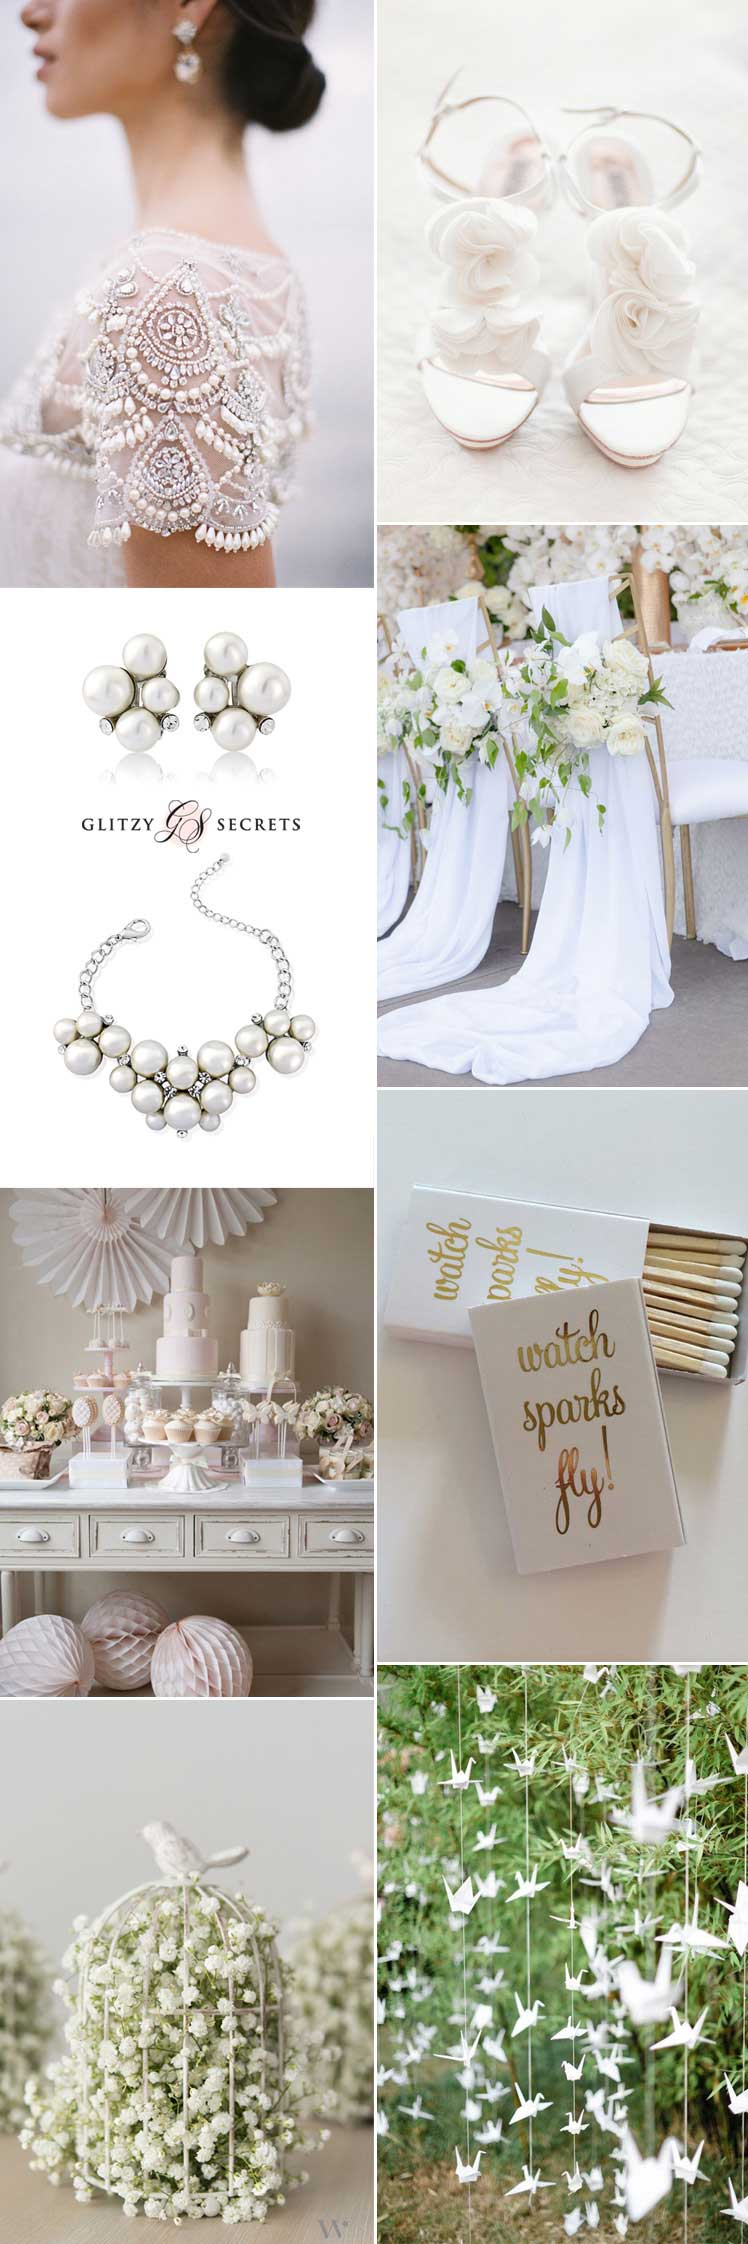 embrace the beauty of an all white wedding theme